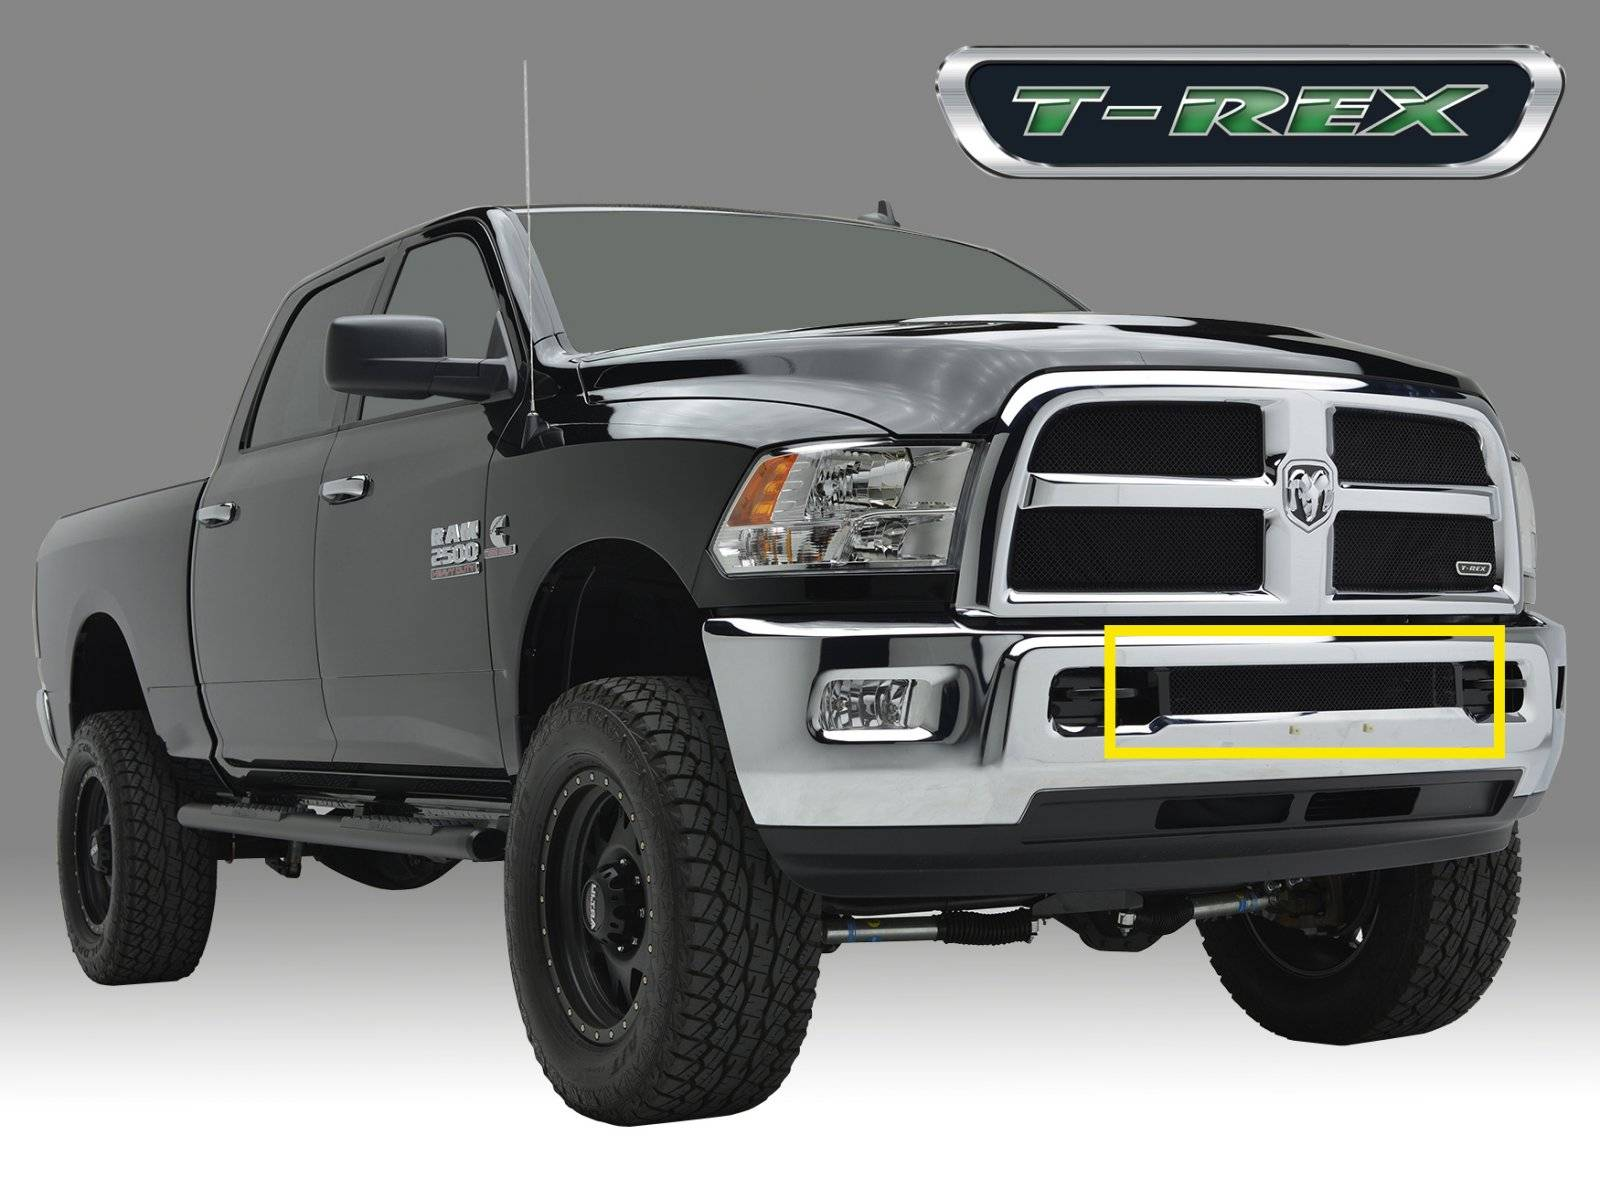 T-REX Dodge Ram PU 2500 / 3500 Sport Series, Mesh Grille, Bumper, Insert, 1 Pc, Black Powdercoated Mild Steel - Pt # 47452